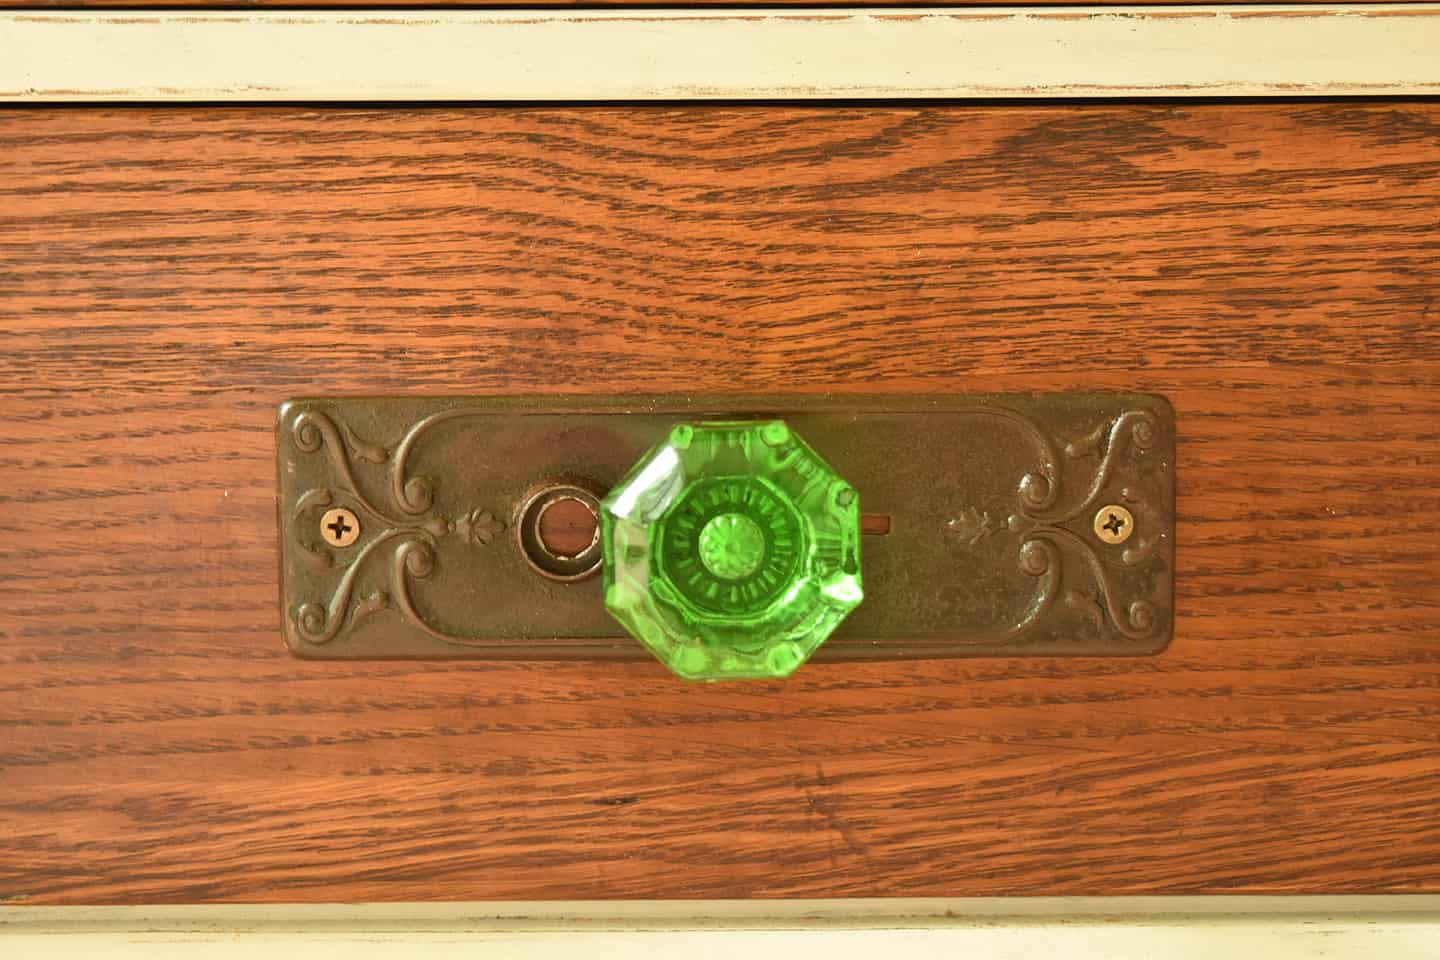 Emerald green glass doorknob on vintage furniture.